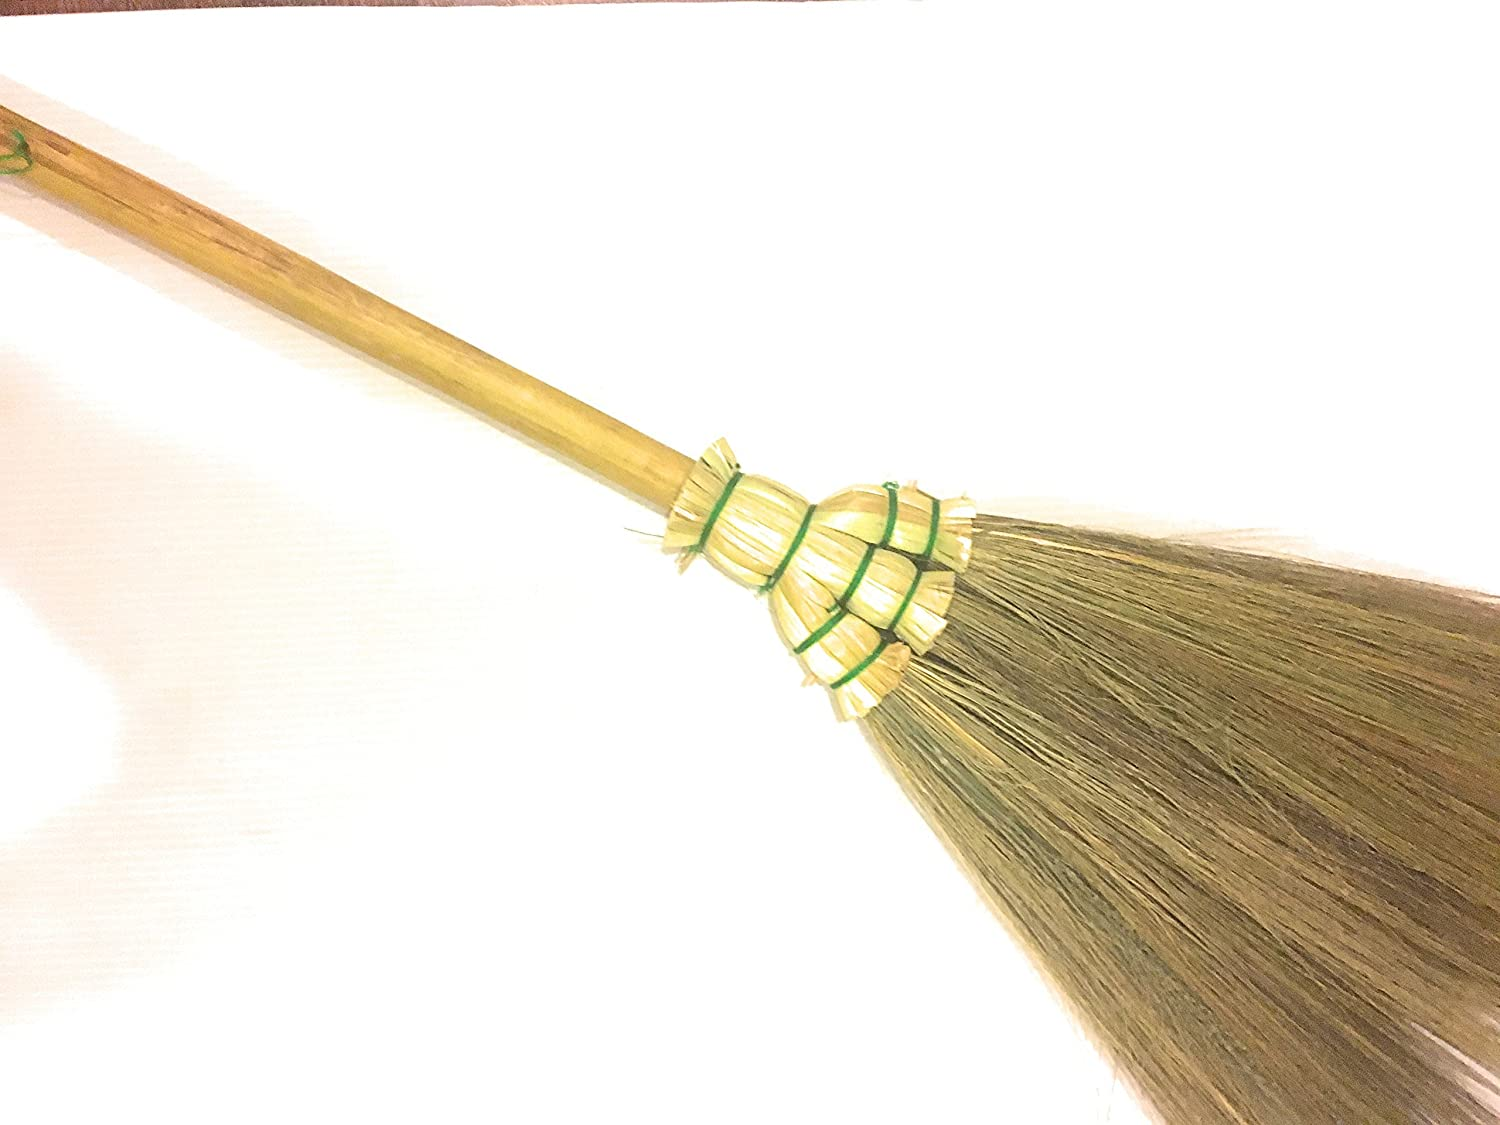 Thai Traditional Handmade Broom Grass bamboo handle Natural color, Tiny broom Perfect for any kitchen, car, restaurant, office, or any room cleaning Home decor vintage (length 28') 1pc or any room cleaning Home decor vintage (length 28) 1pc TrendyLife2015